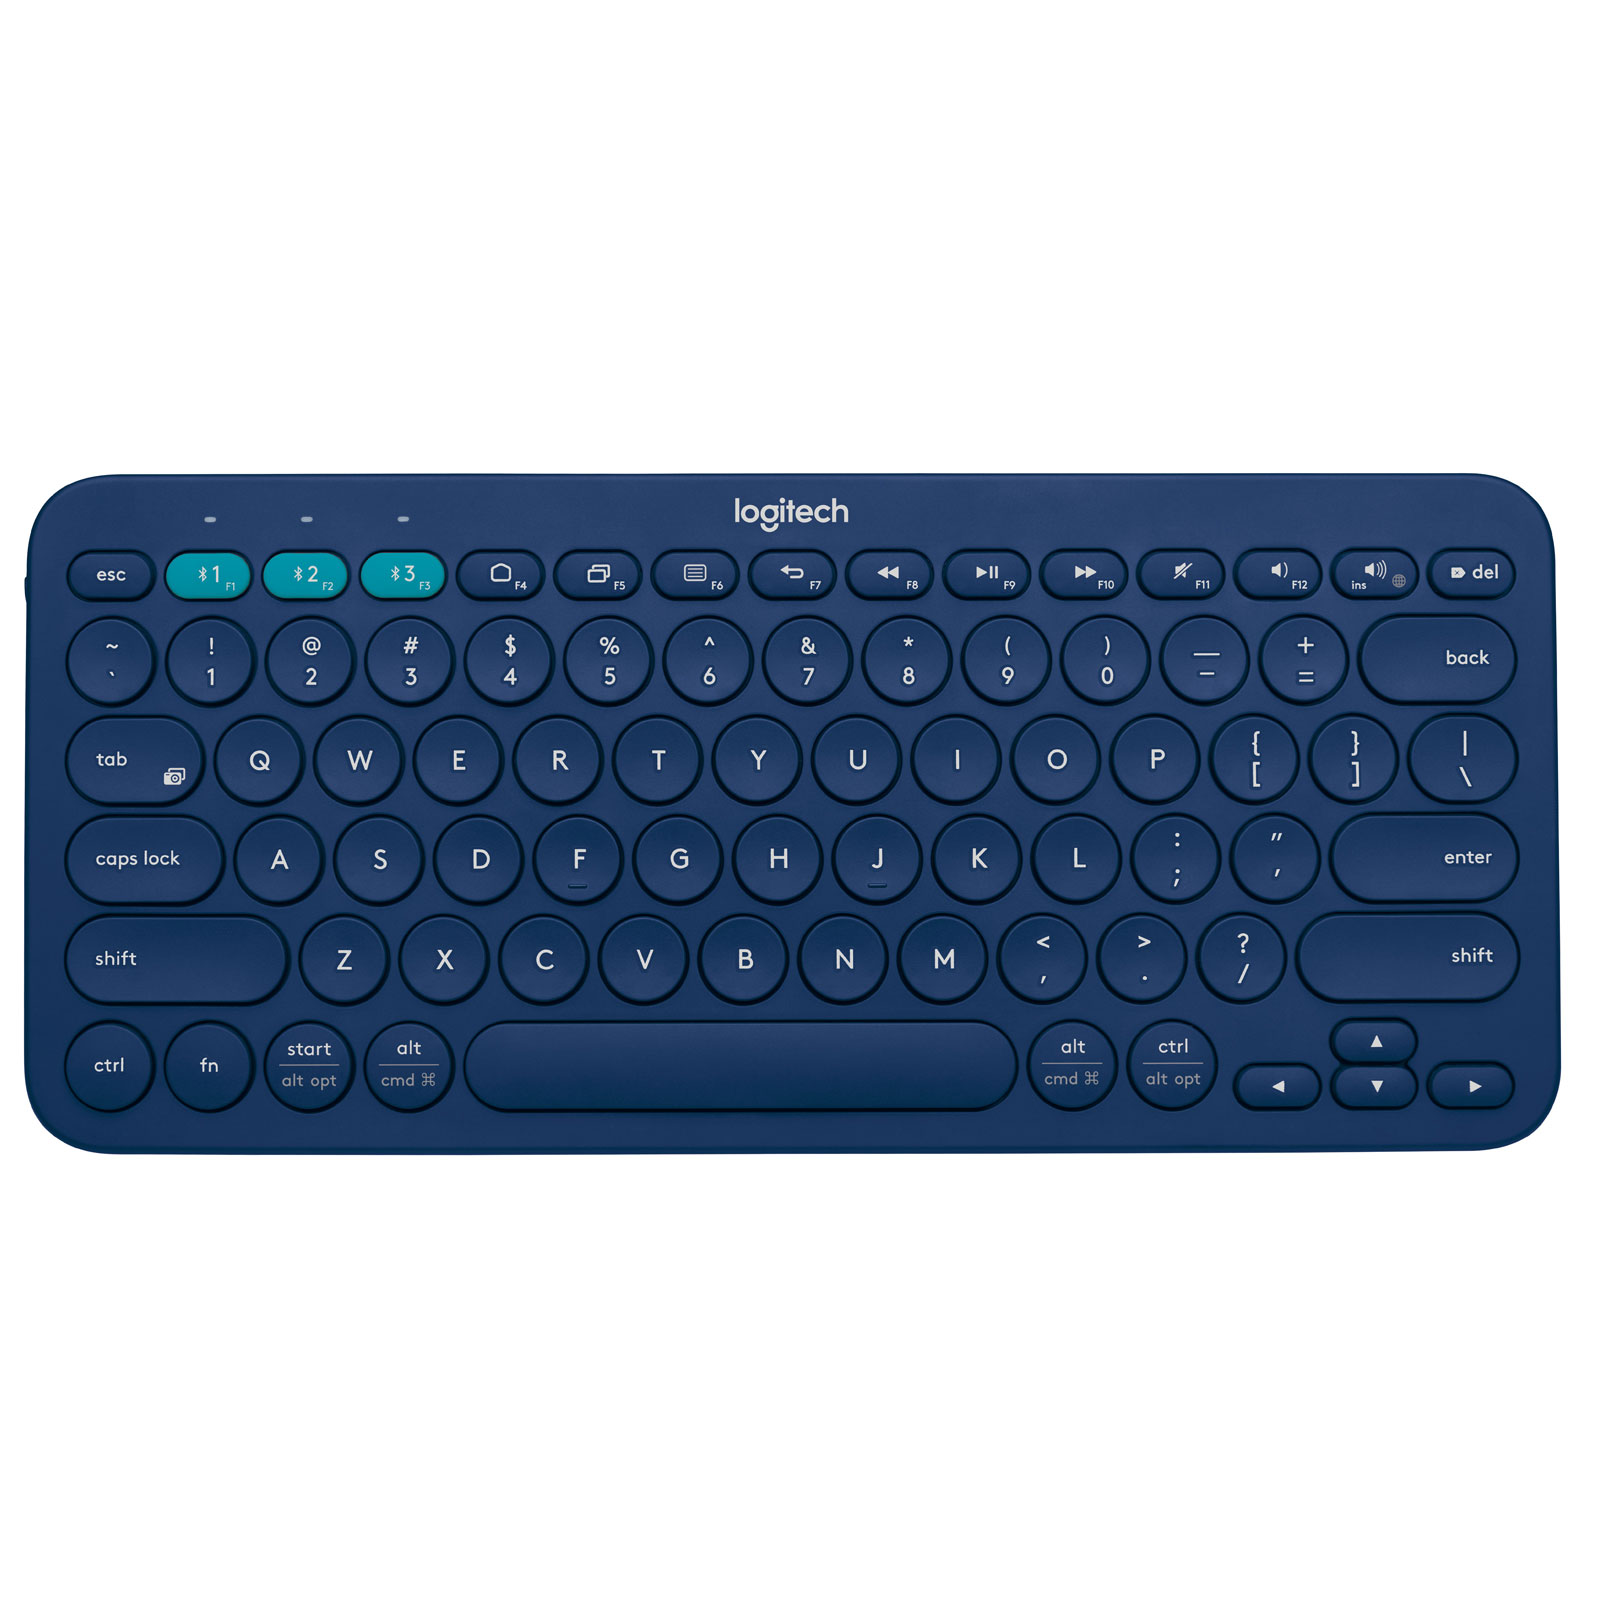 logitech multi device keyboard k380 bleu accessoires tablette logitech sur ldlc. Black Bedroom Furniture Sets. Home Design Ideas